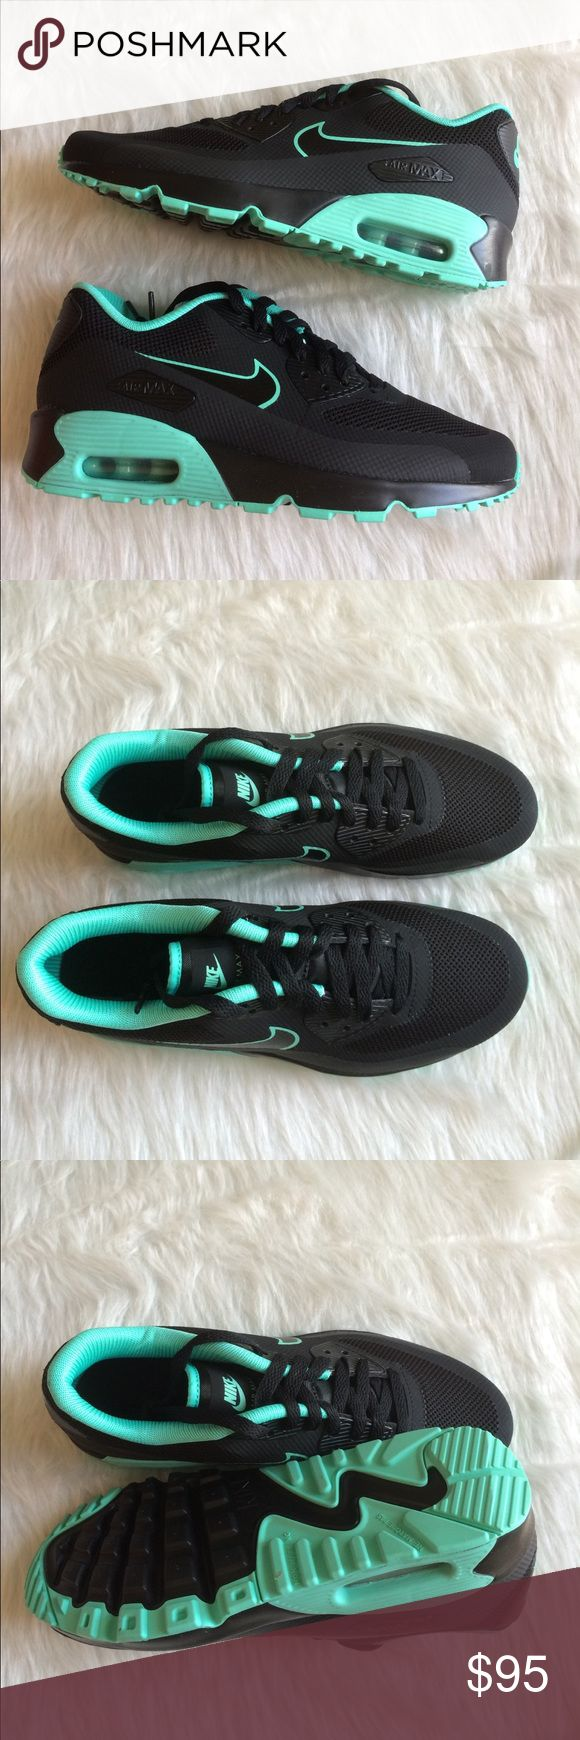 Nike air max 90 black shoes fb se | Air max 90 black, Turquoise shoes and Air  max 90